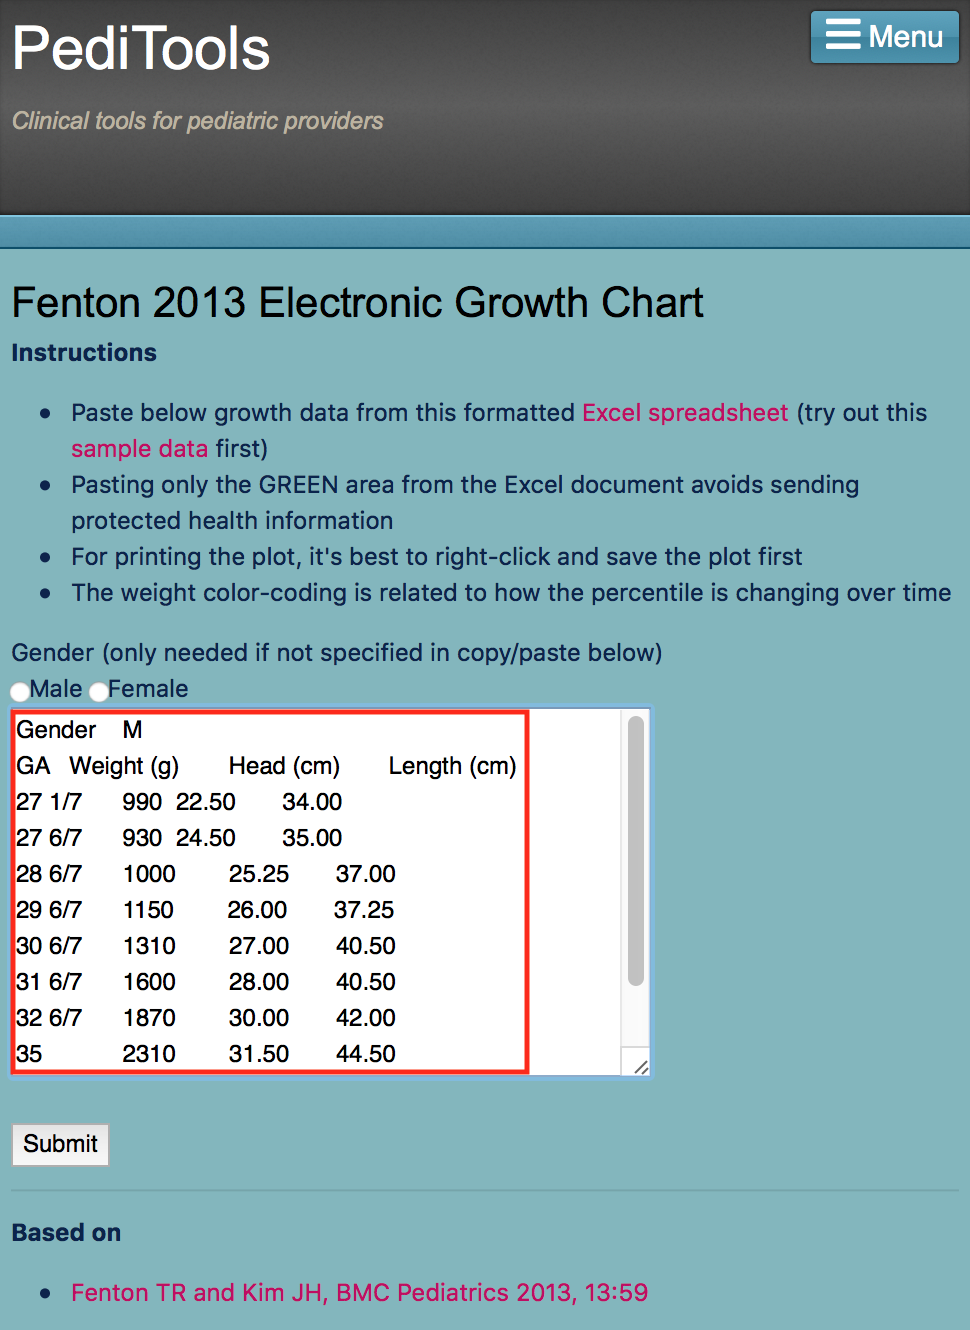 fenton 2013 electronic growth chart